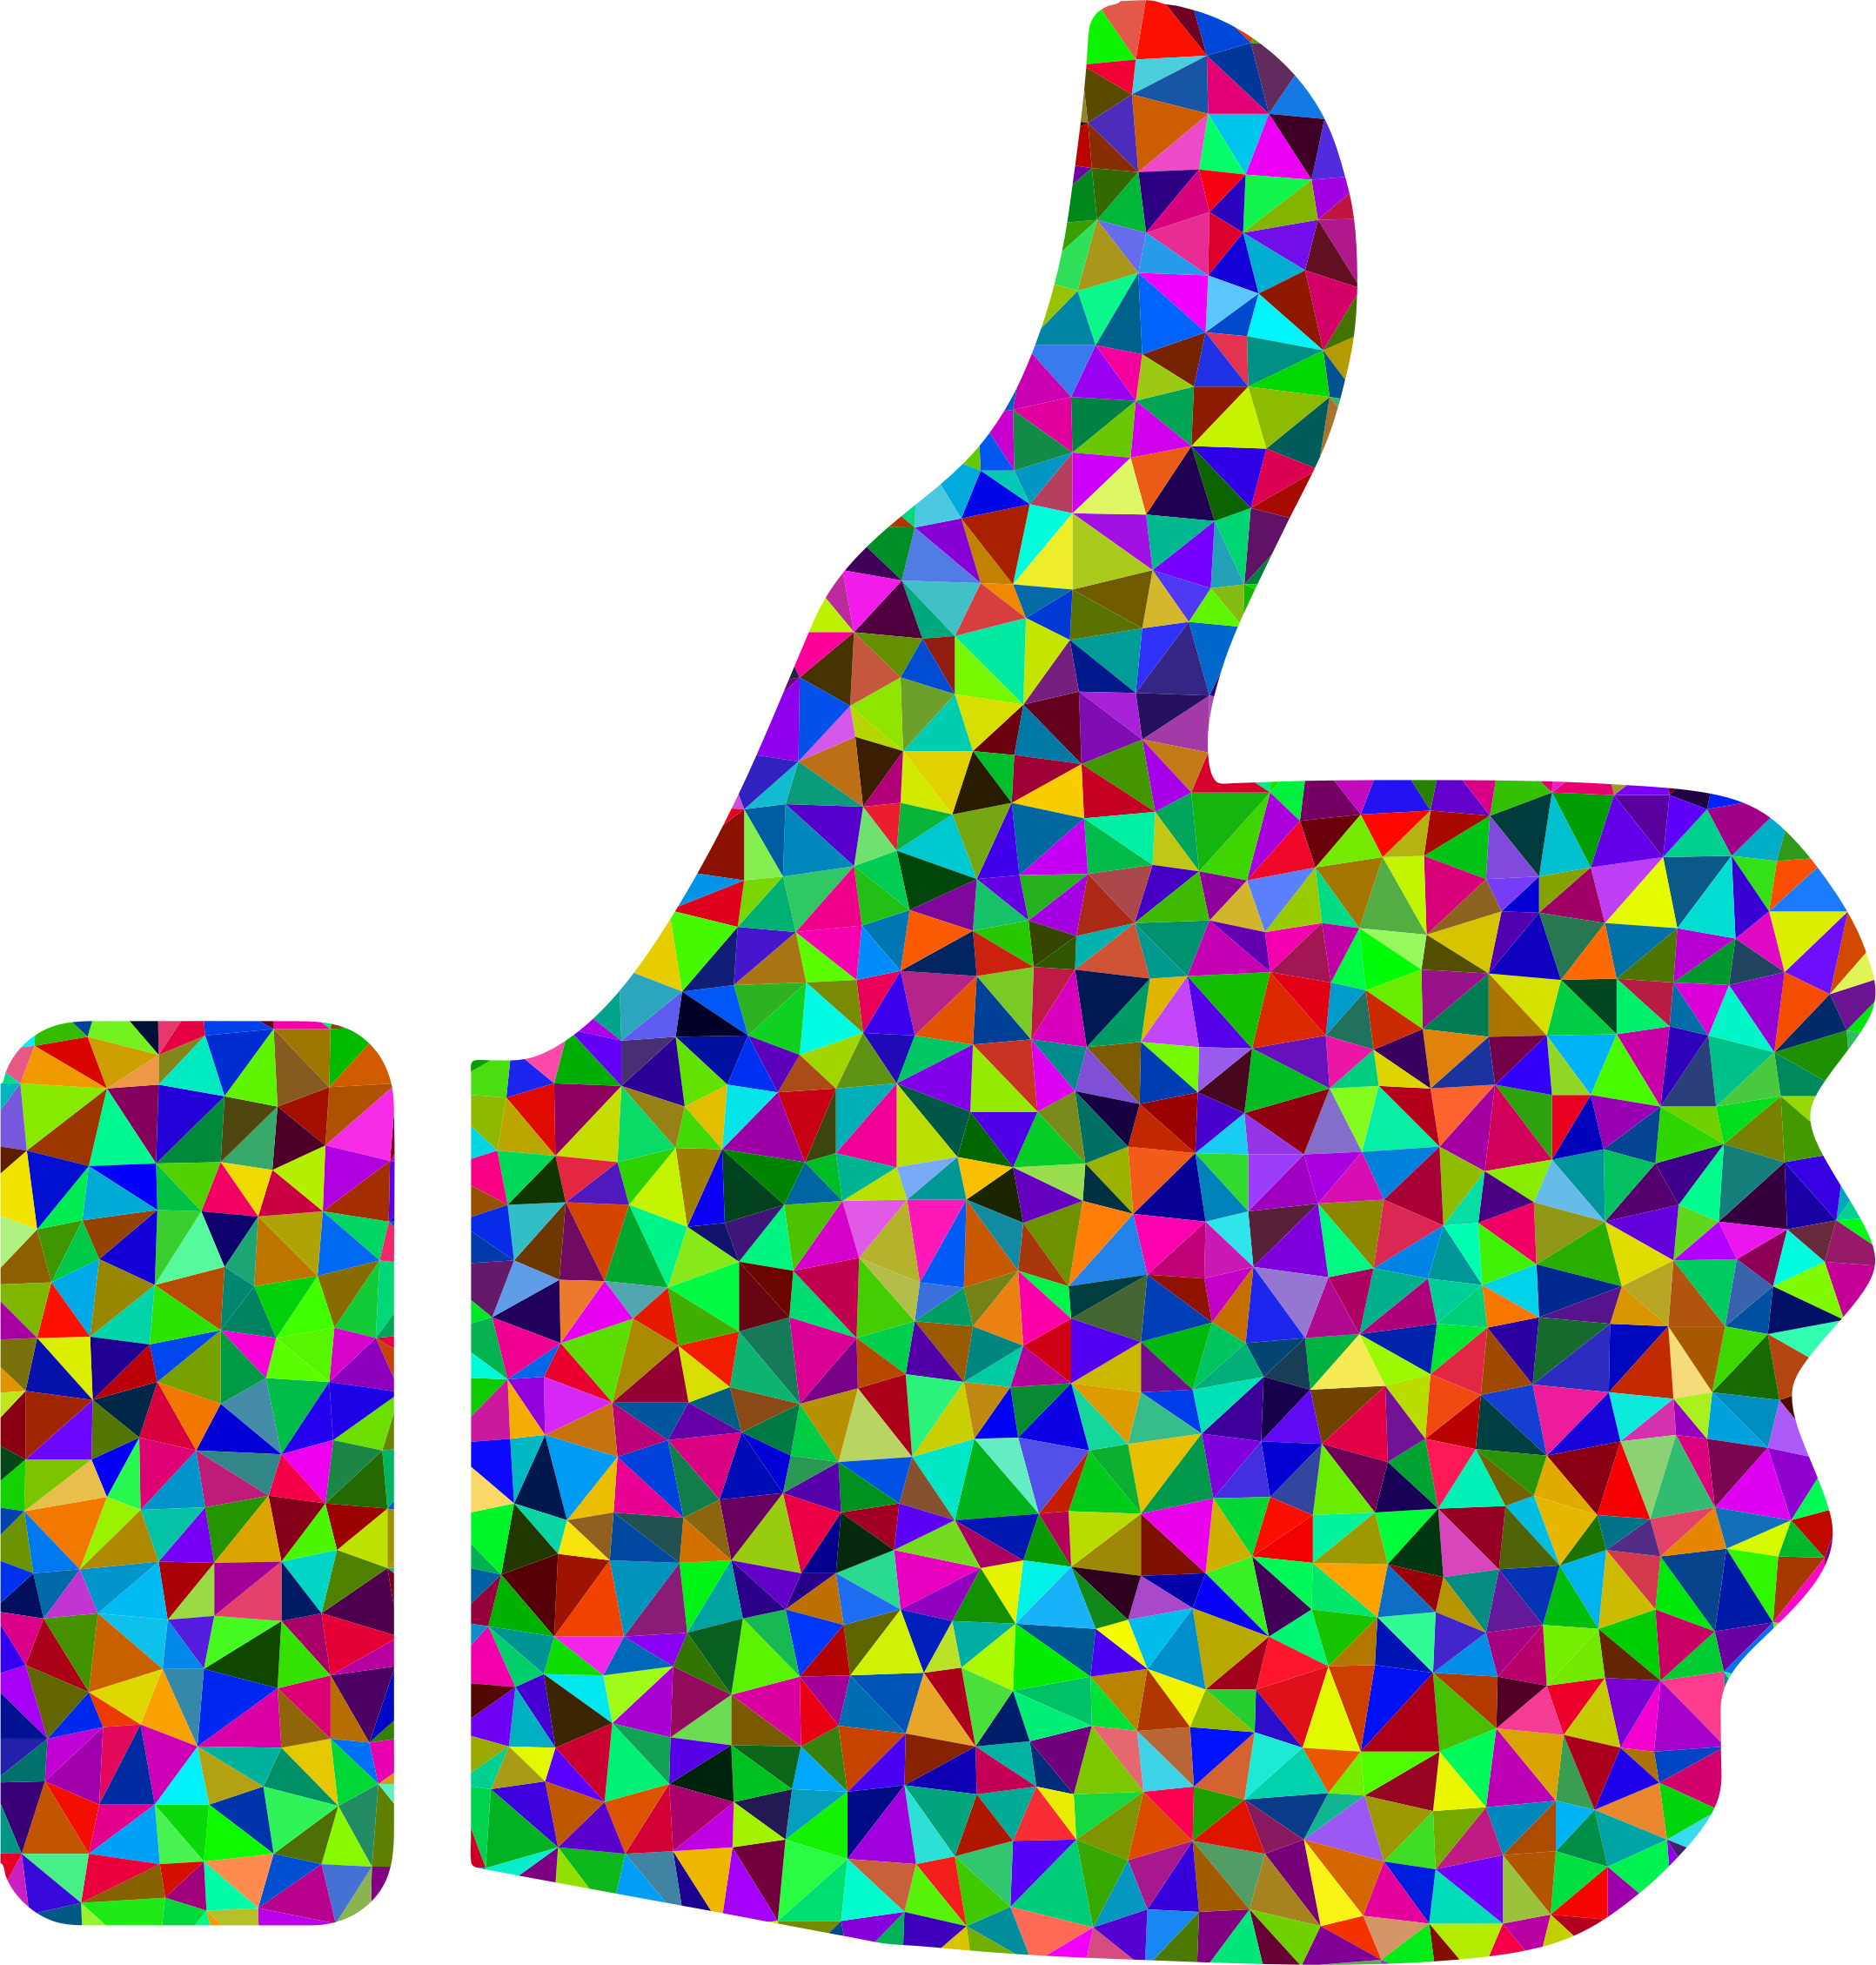 Prismatic Low Poly Thumbs Up by GDJ